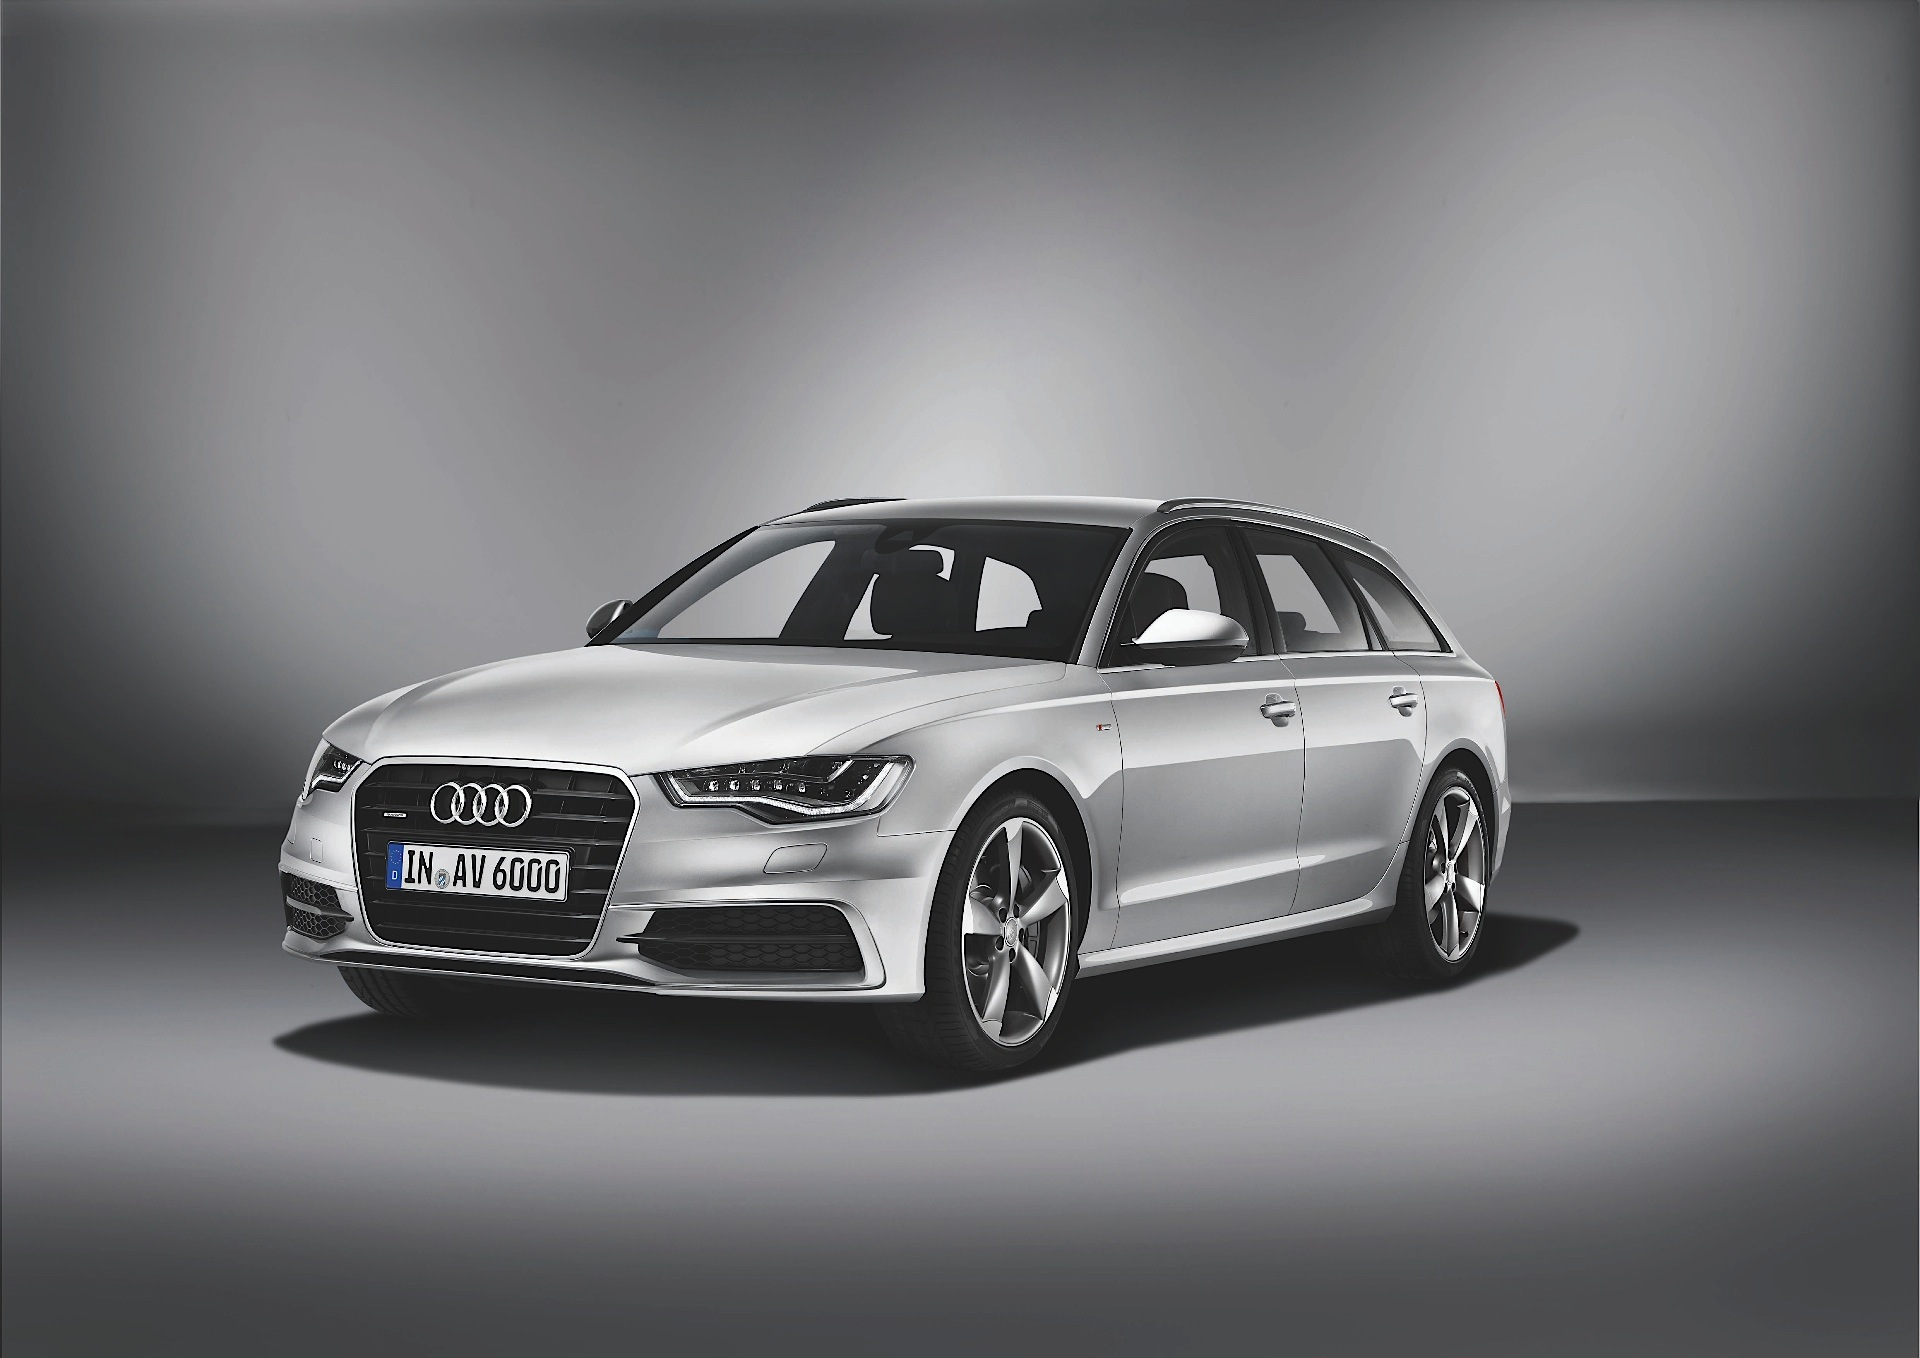 audi a6 avant specs 2011 2012 2013 2014 autoevolution. Black Bedroom Furniture Sets. Home Design Ideas